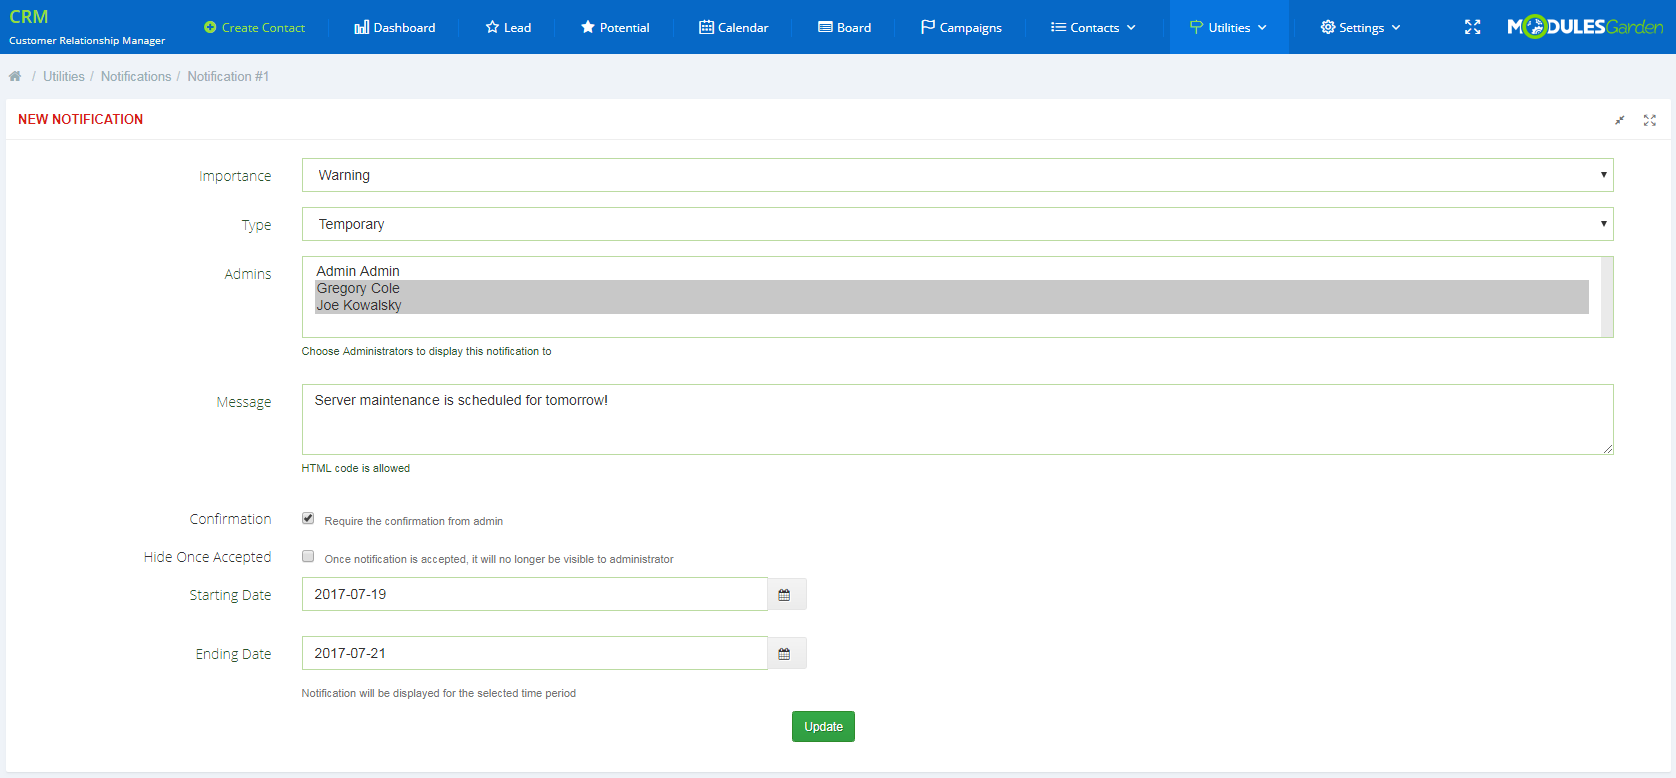 CRM For WHMCS: Screen 12